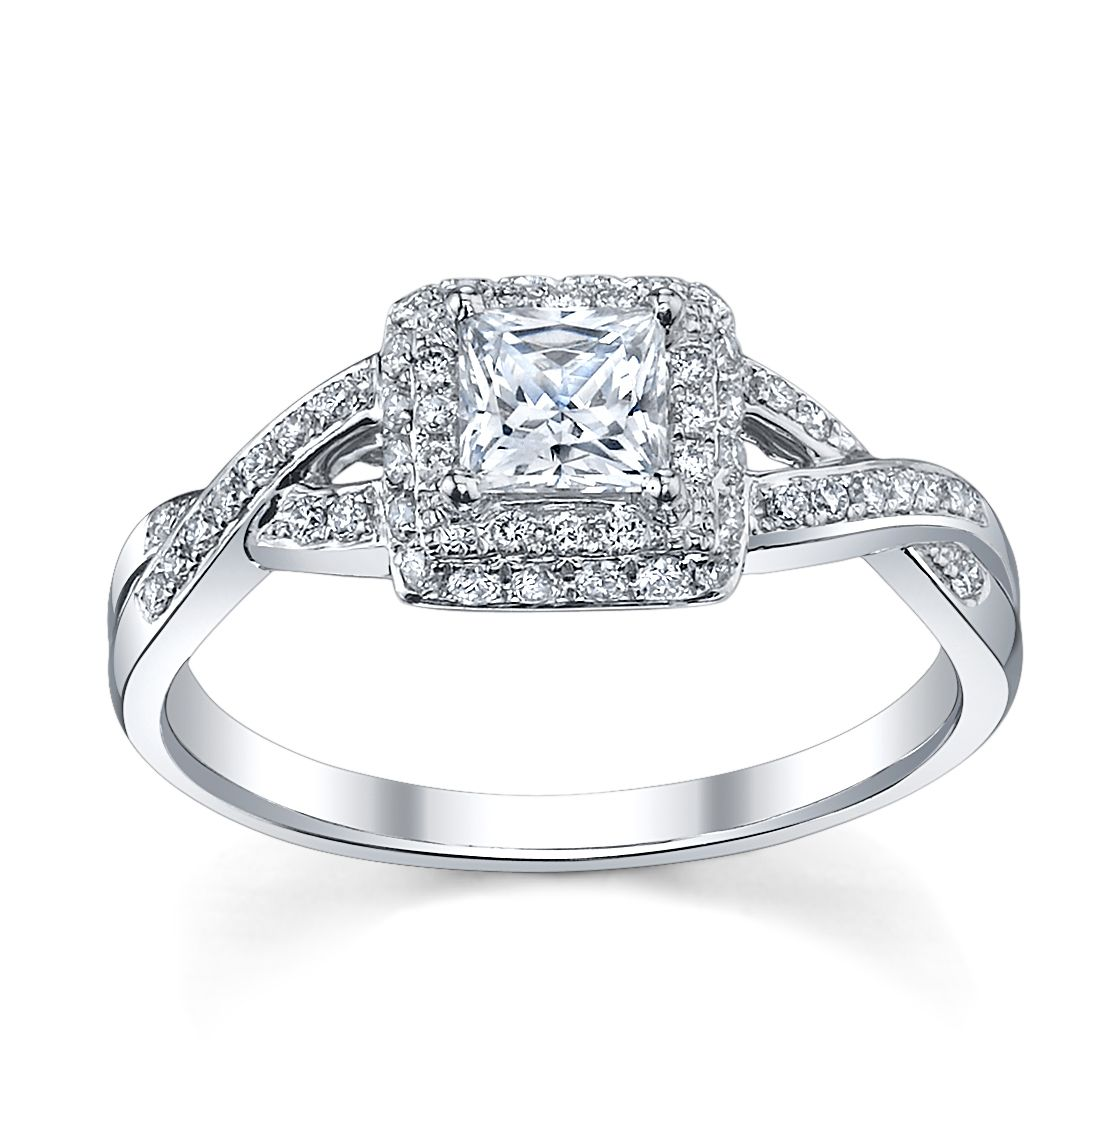 6 Princess Cut Engagement Rings She'll Love | Halo, Vintage and ...